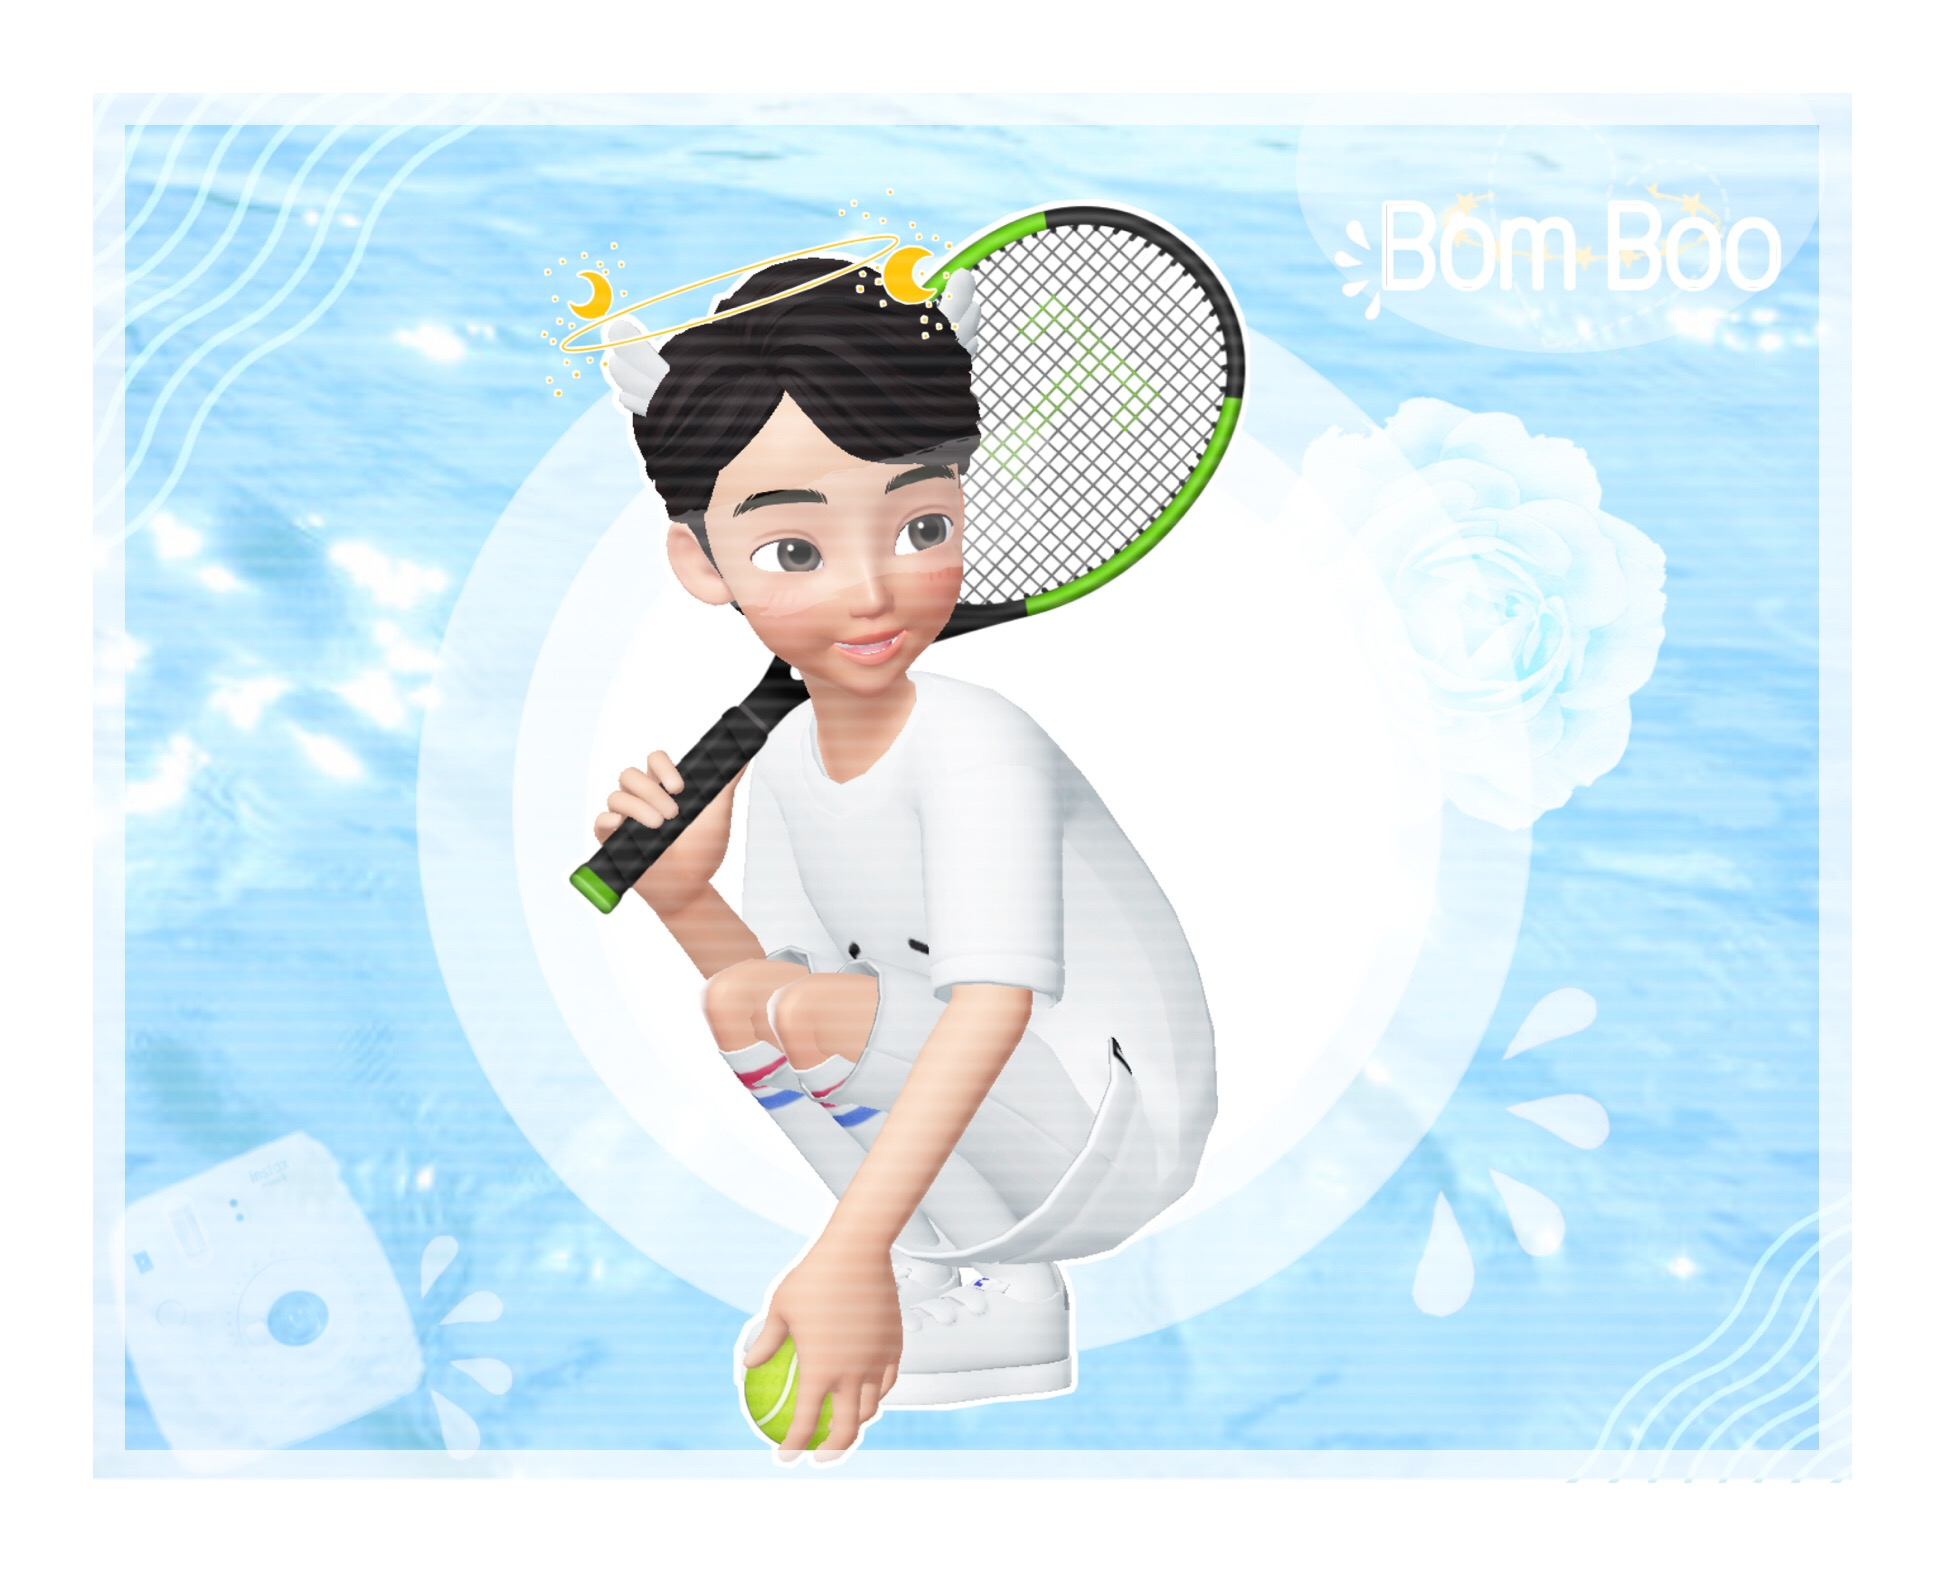 Ocean Zepeto Tennis Aesthetic Feature Image By Marsho